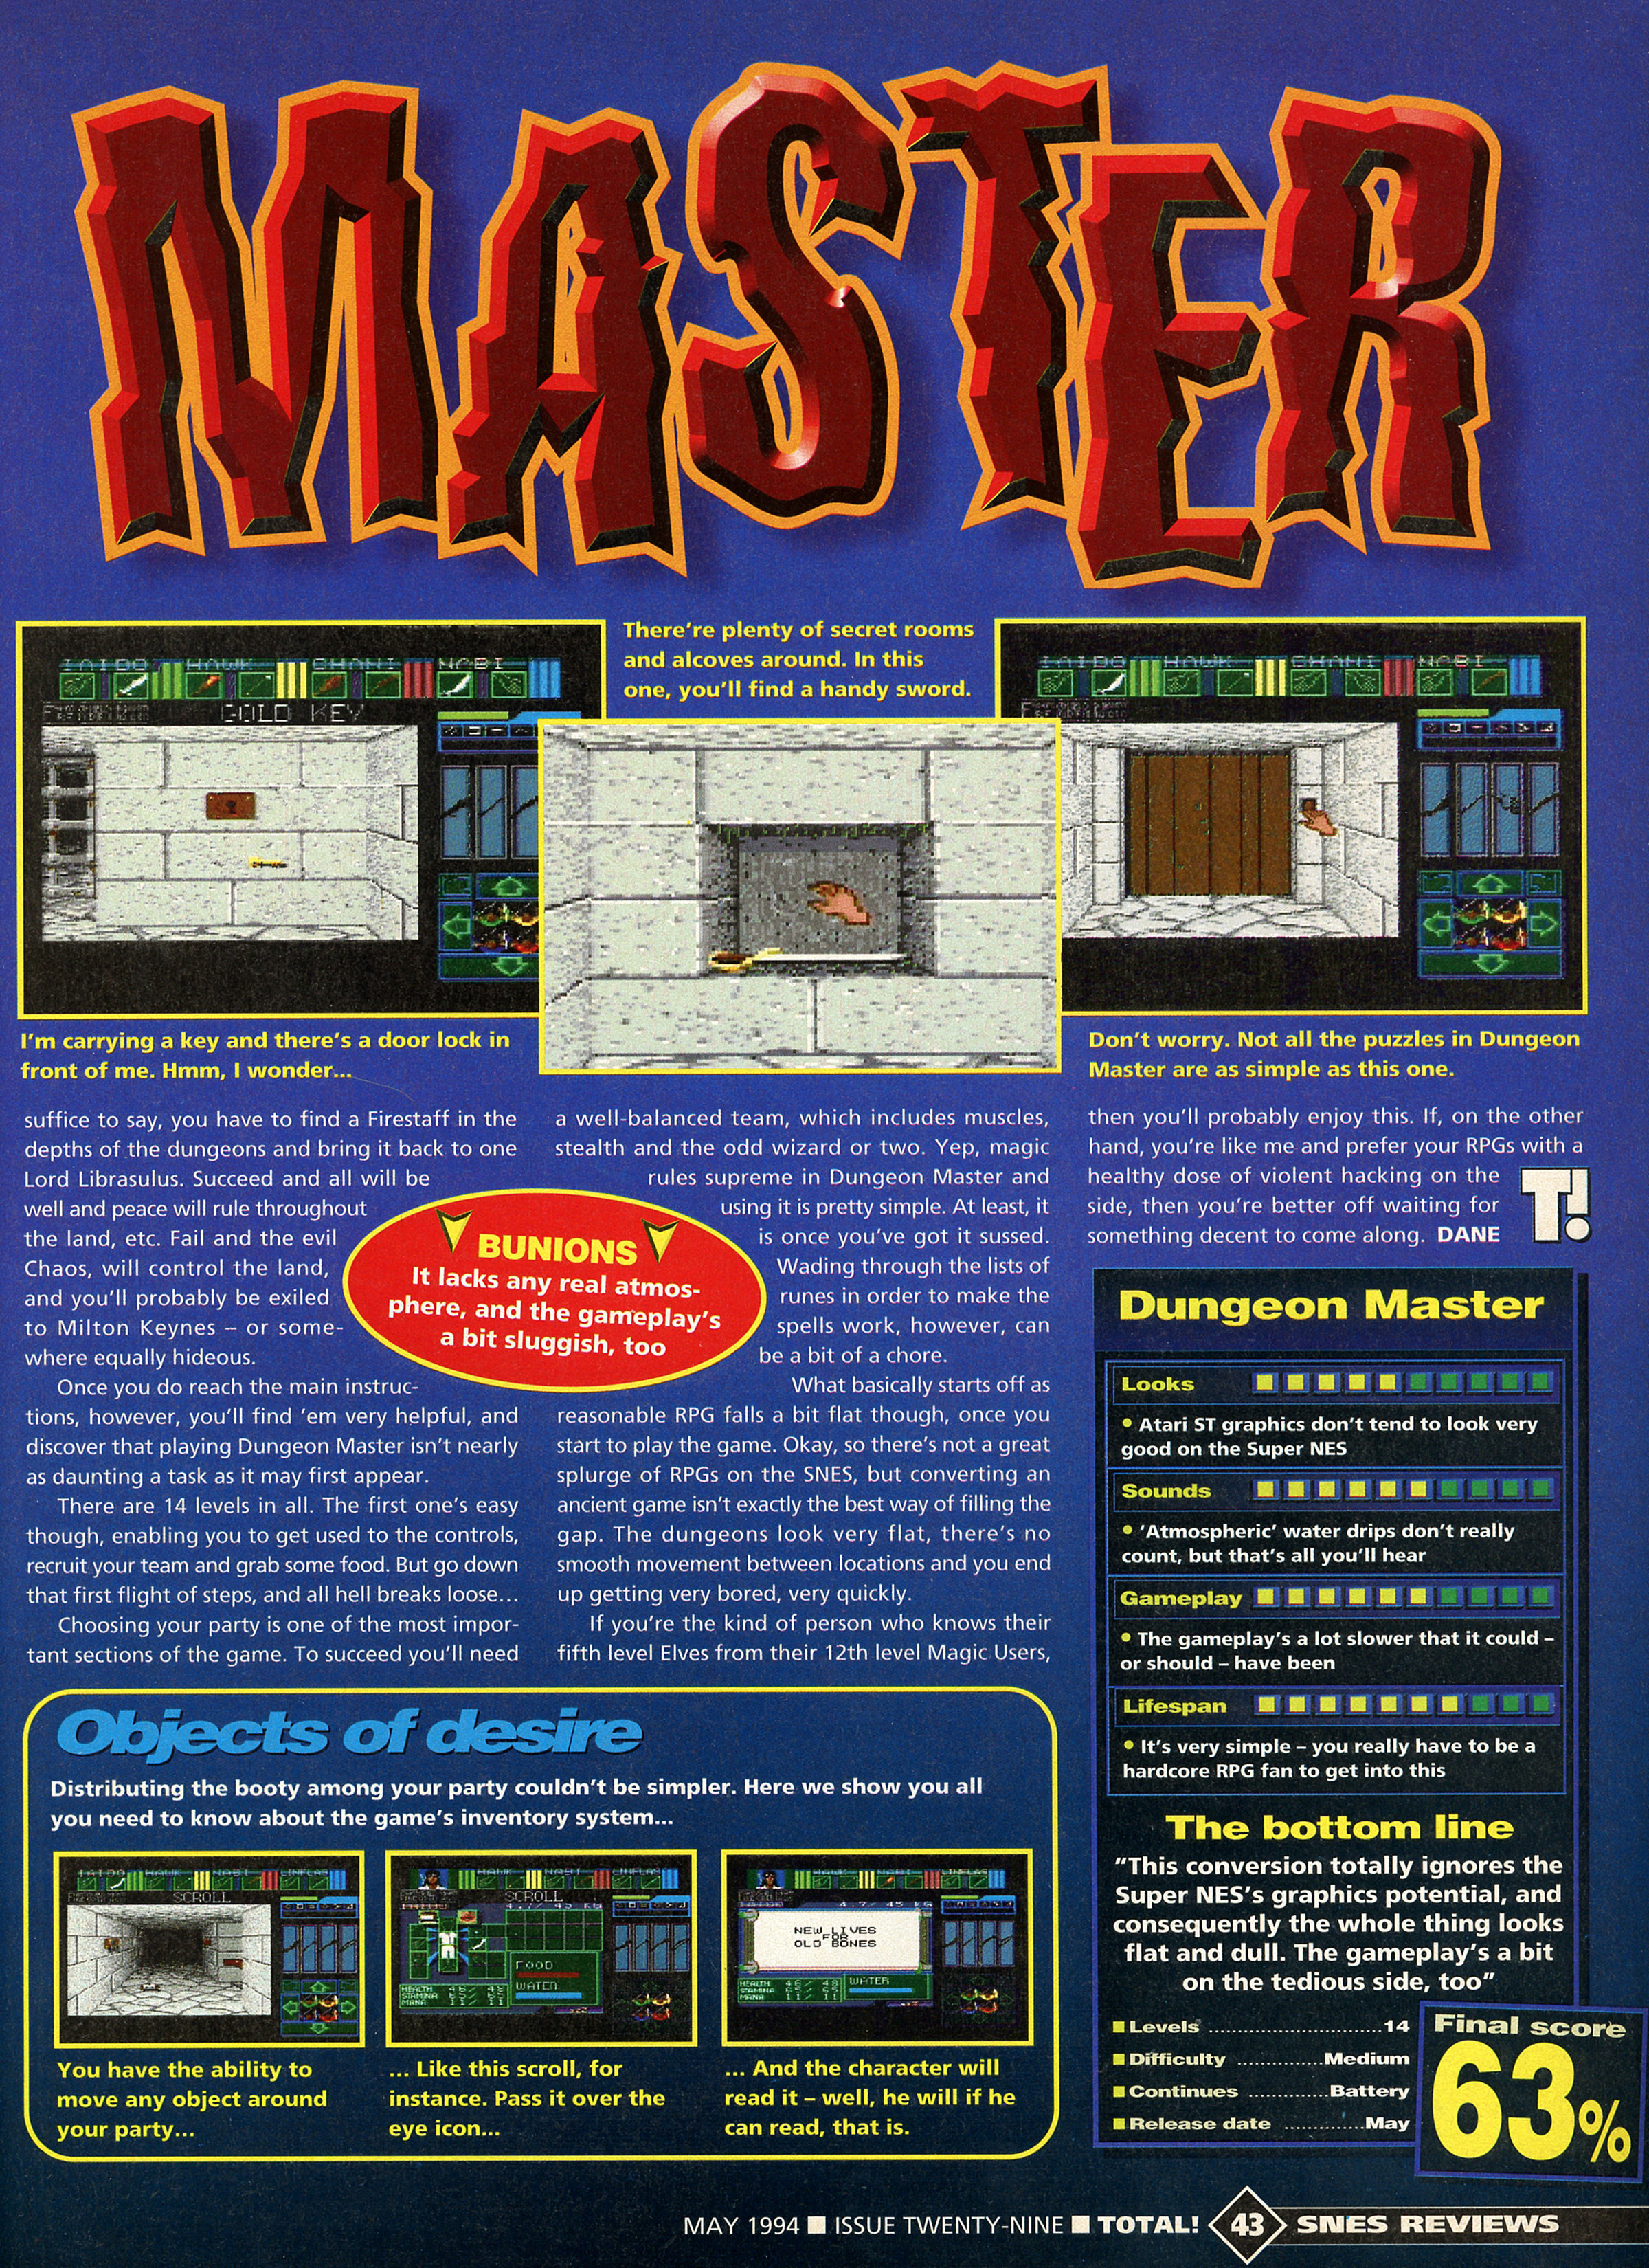 Dungeon Master for Super NES Review published in British magazine 'Total!', Issue #29 May 1994, Page 43